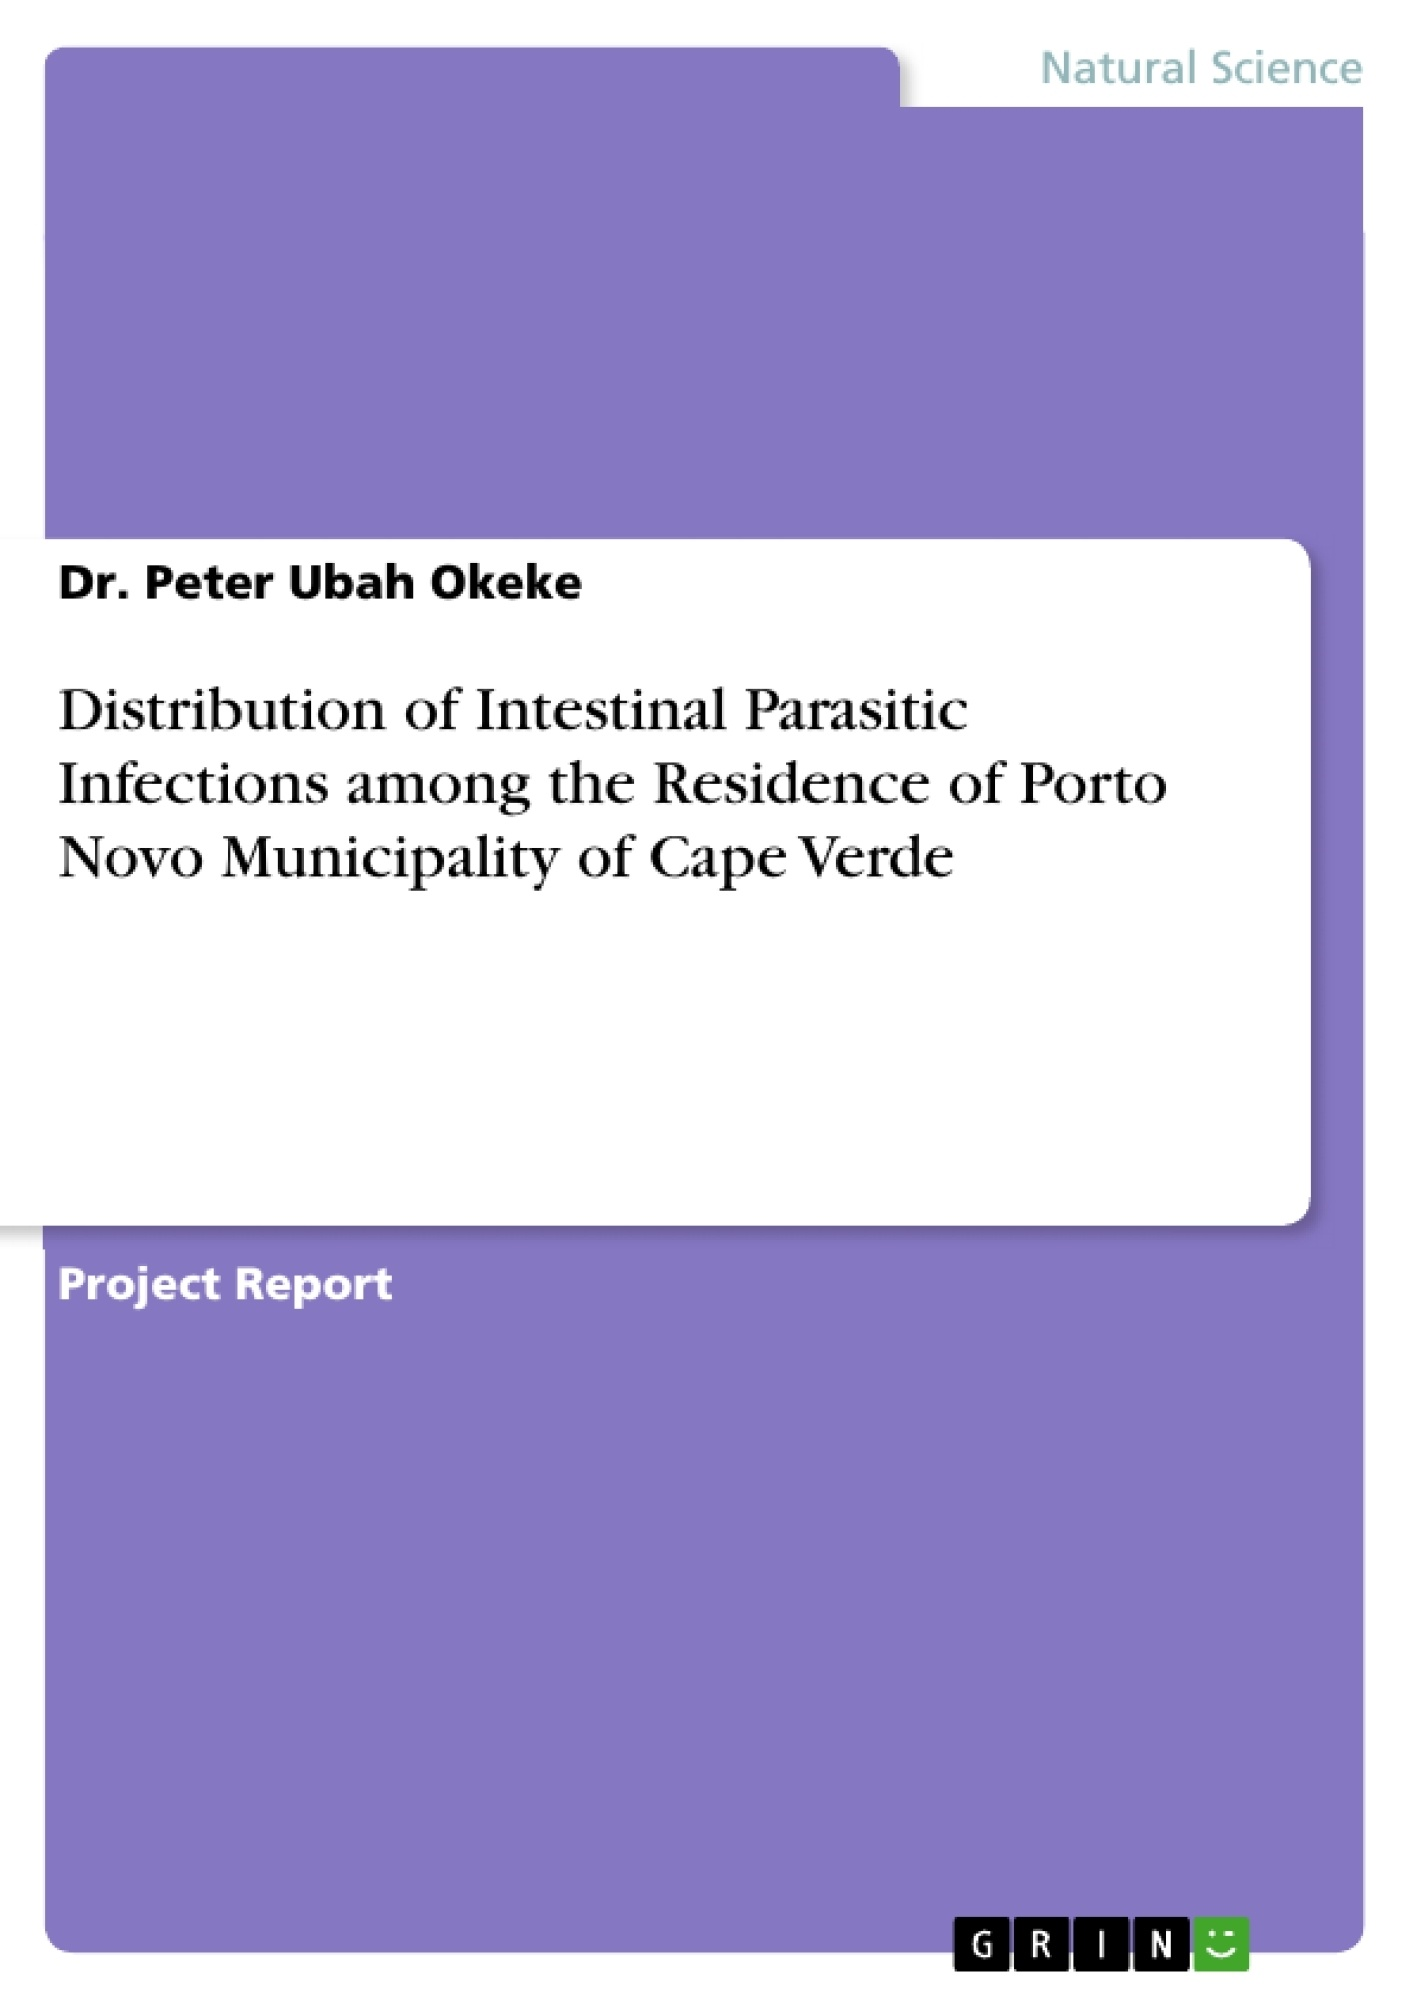 Title: Distribution of Intestinal Parasitic Infections among the Residence of Porto Novo Municipality of Cape Verde